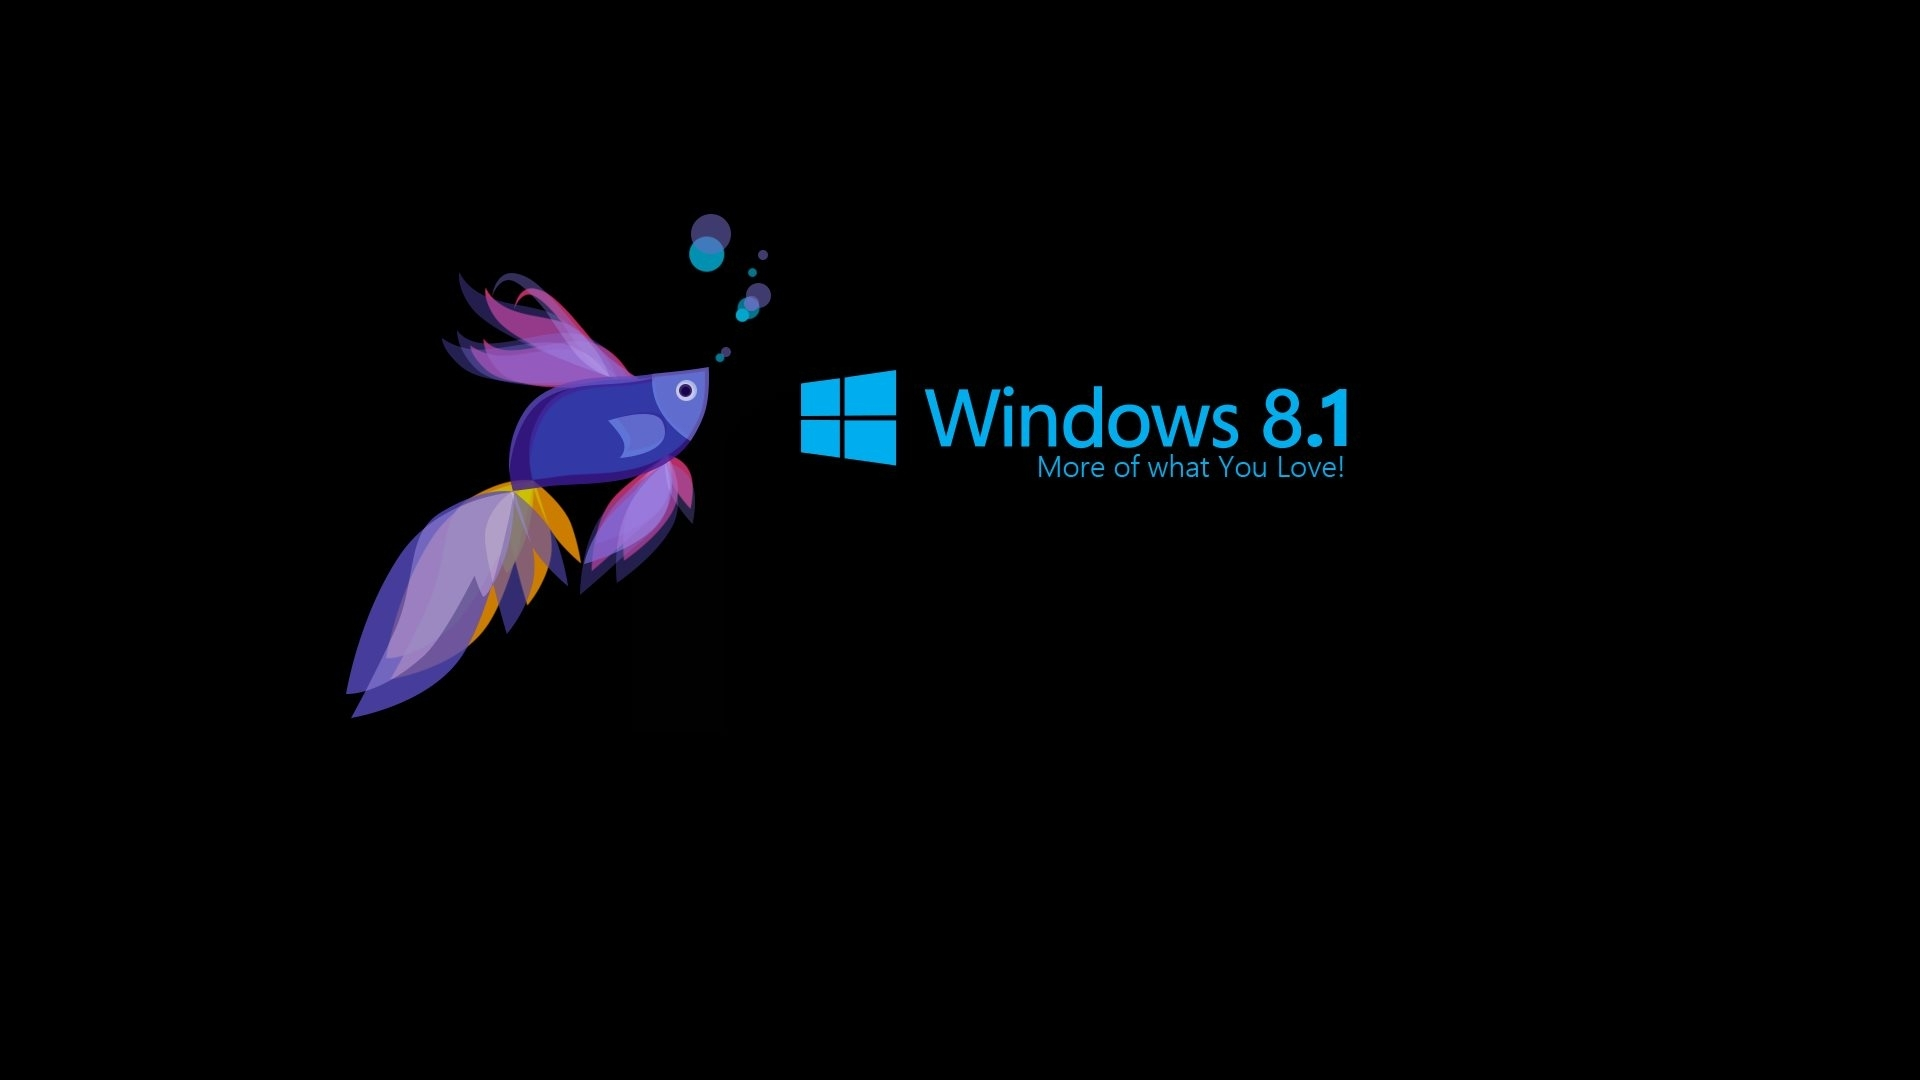 11 windows 8.1 hd wallpapers | background images - wallpaper abyss